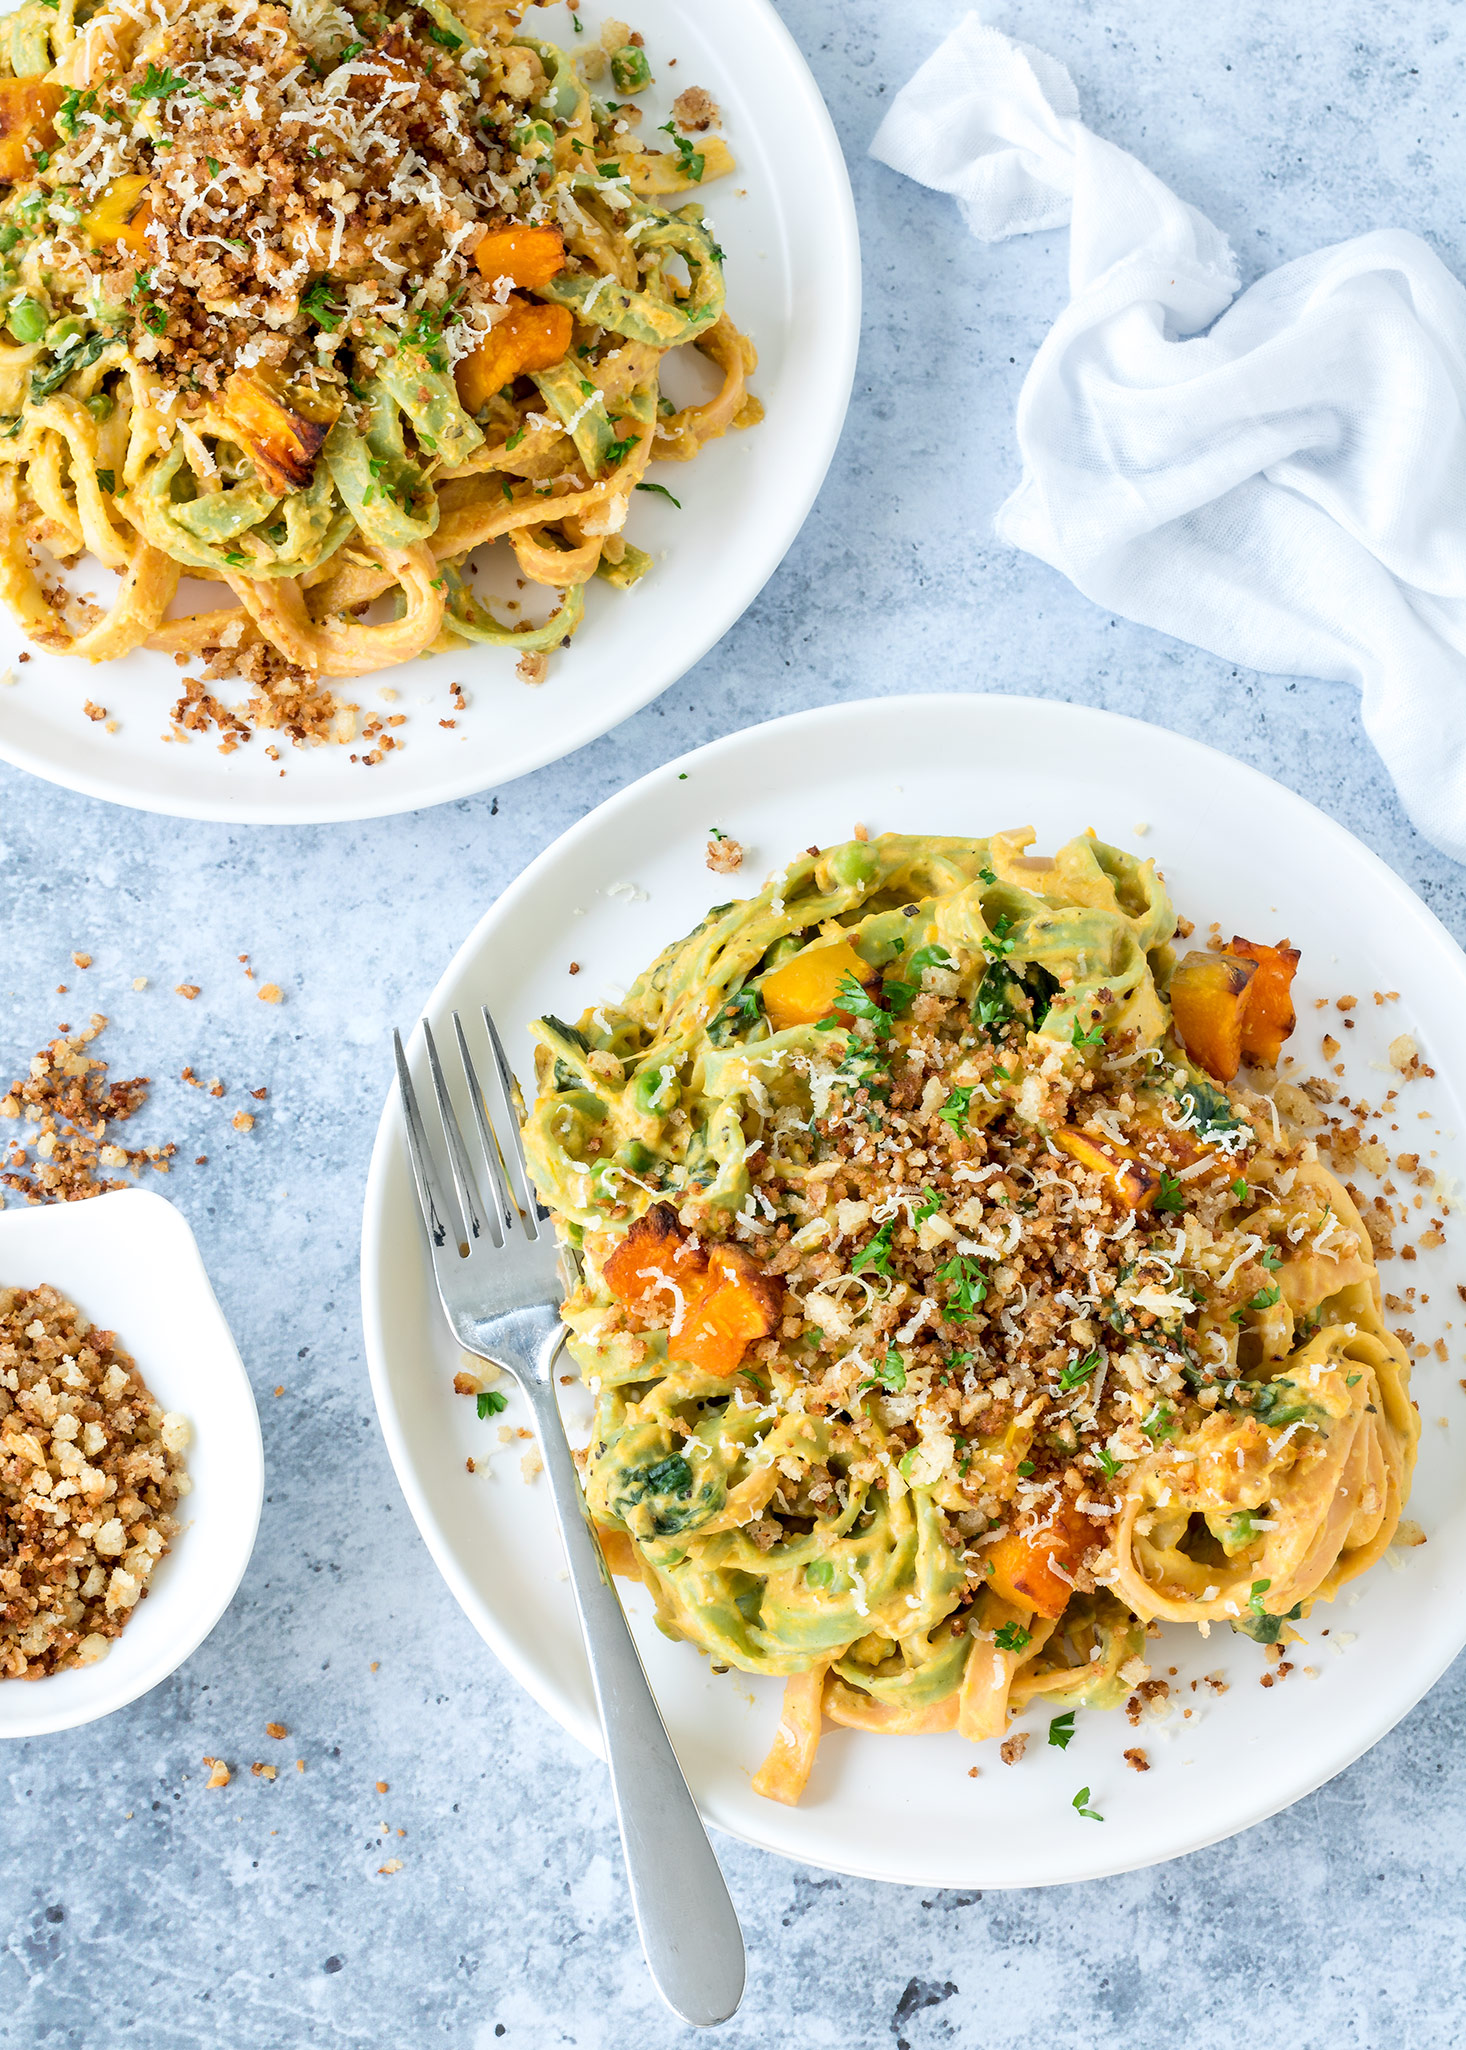 This vegetarian creamy pumpkin pasta is such good comfort food! The garlic breadcrumbs add a delicious crunch. Grab yourself a bowlful and get cozy on the couch!